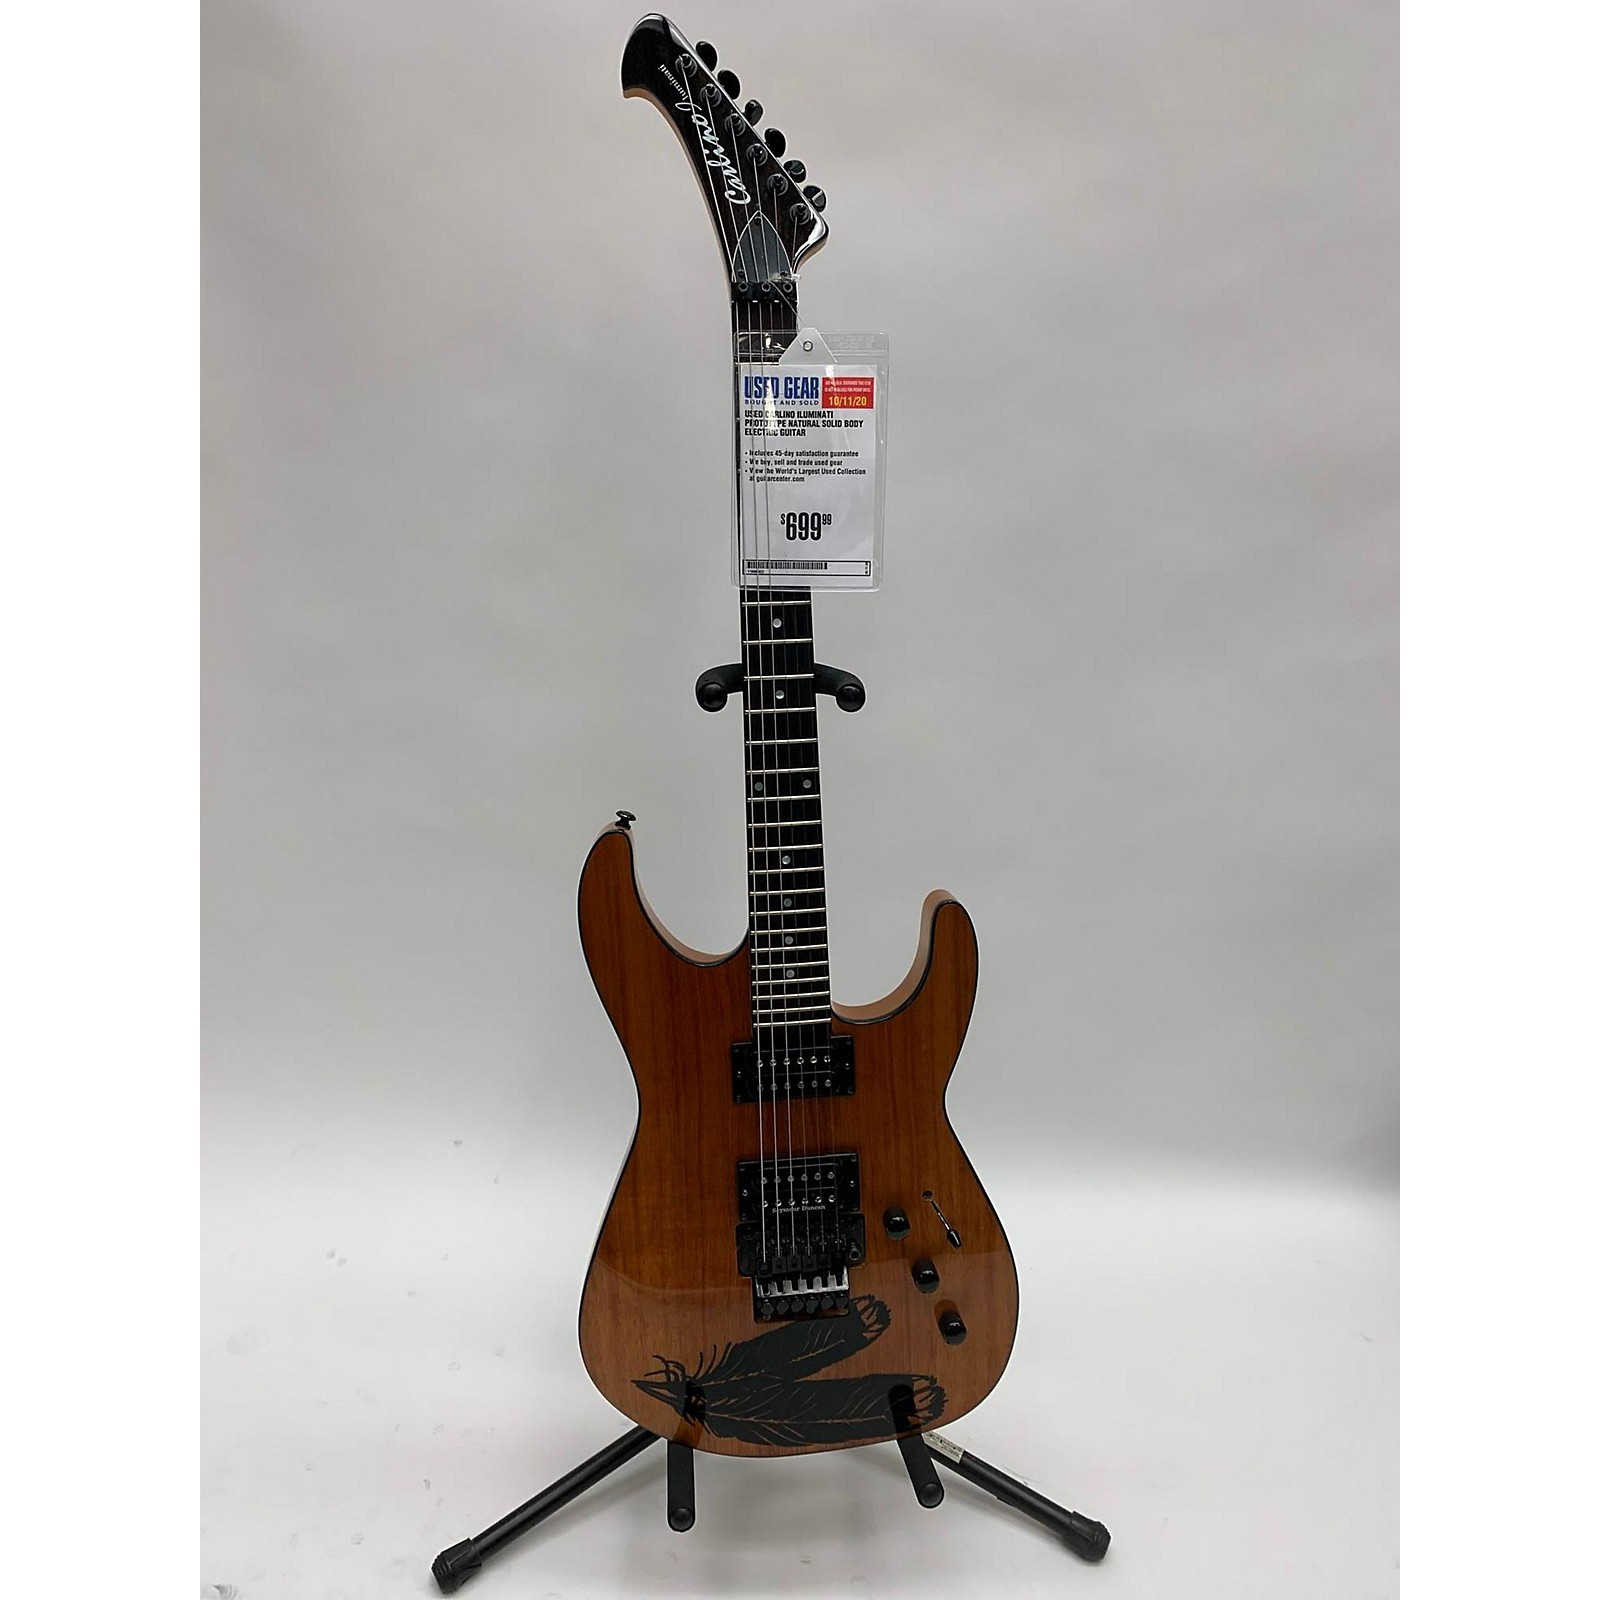 In Store Used Used CARLINO ILUMINATI PROTOTYPE Natural Solid Body Electric Guitar